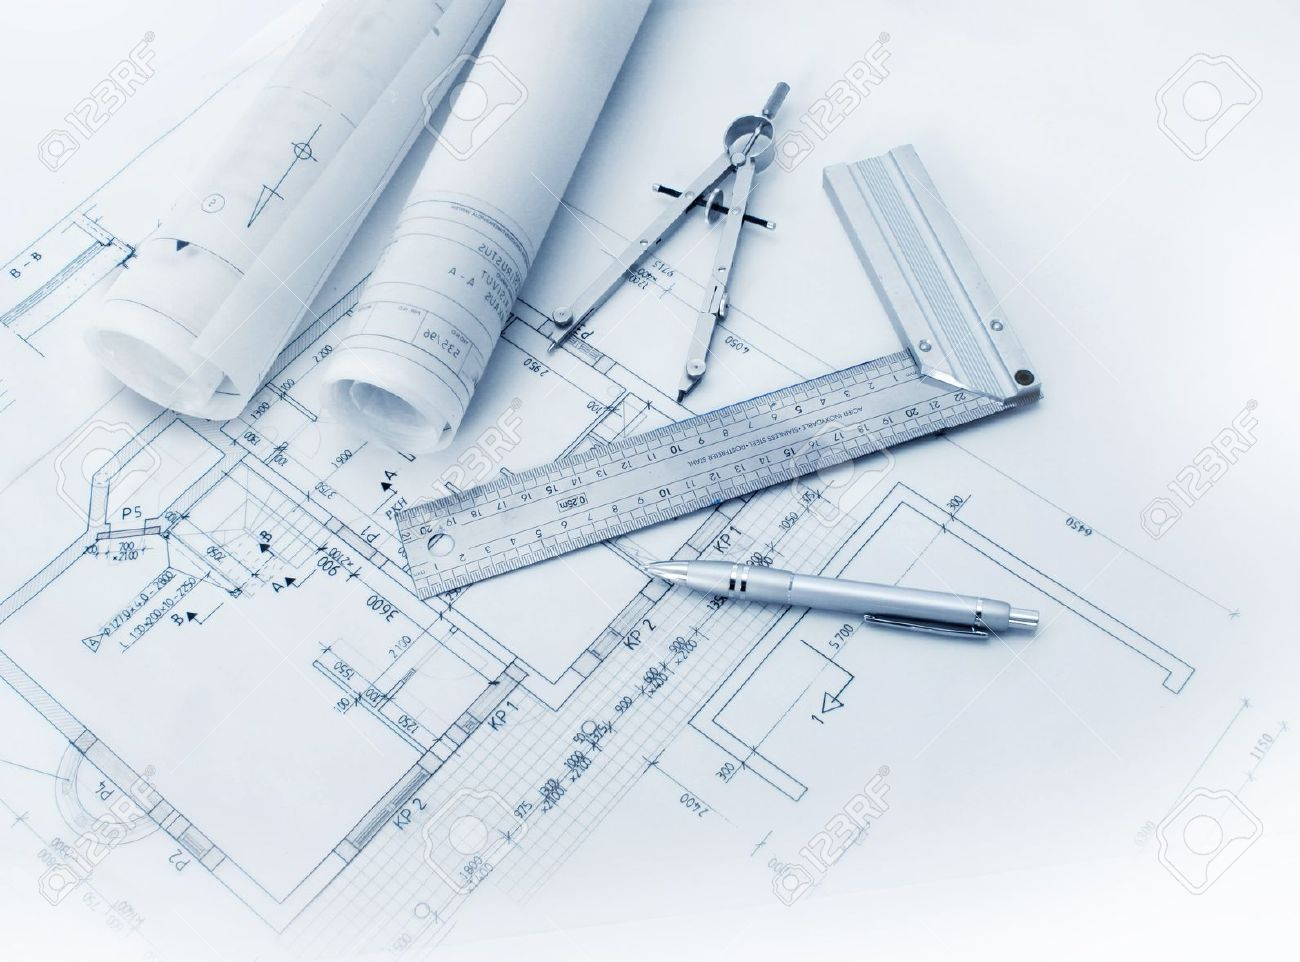 how-did-architect-draw-a-plan-construction-tools-and-blueprint-drawings-stock-photo.jpg